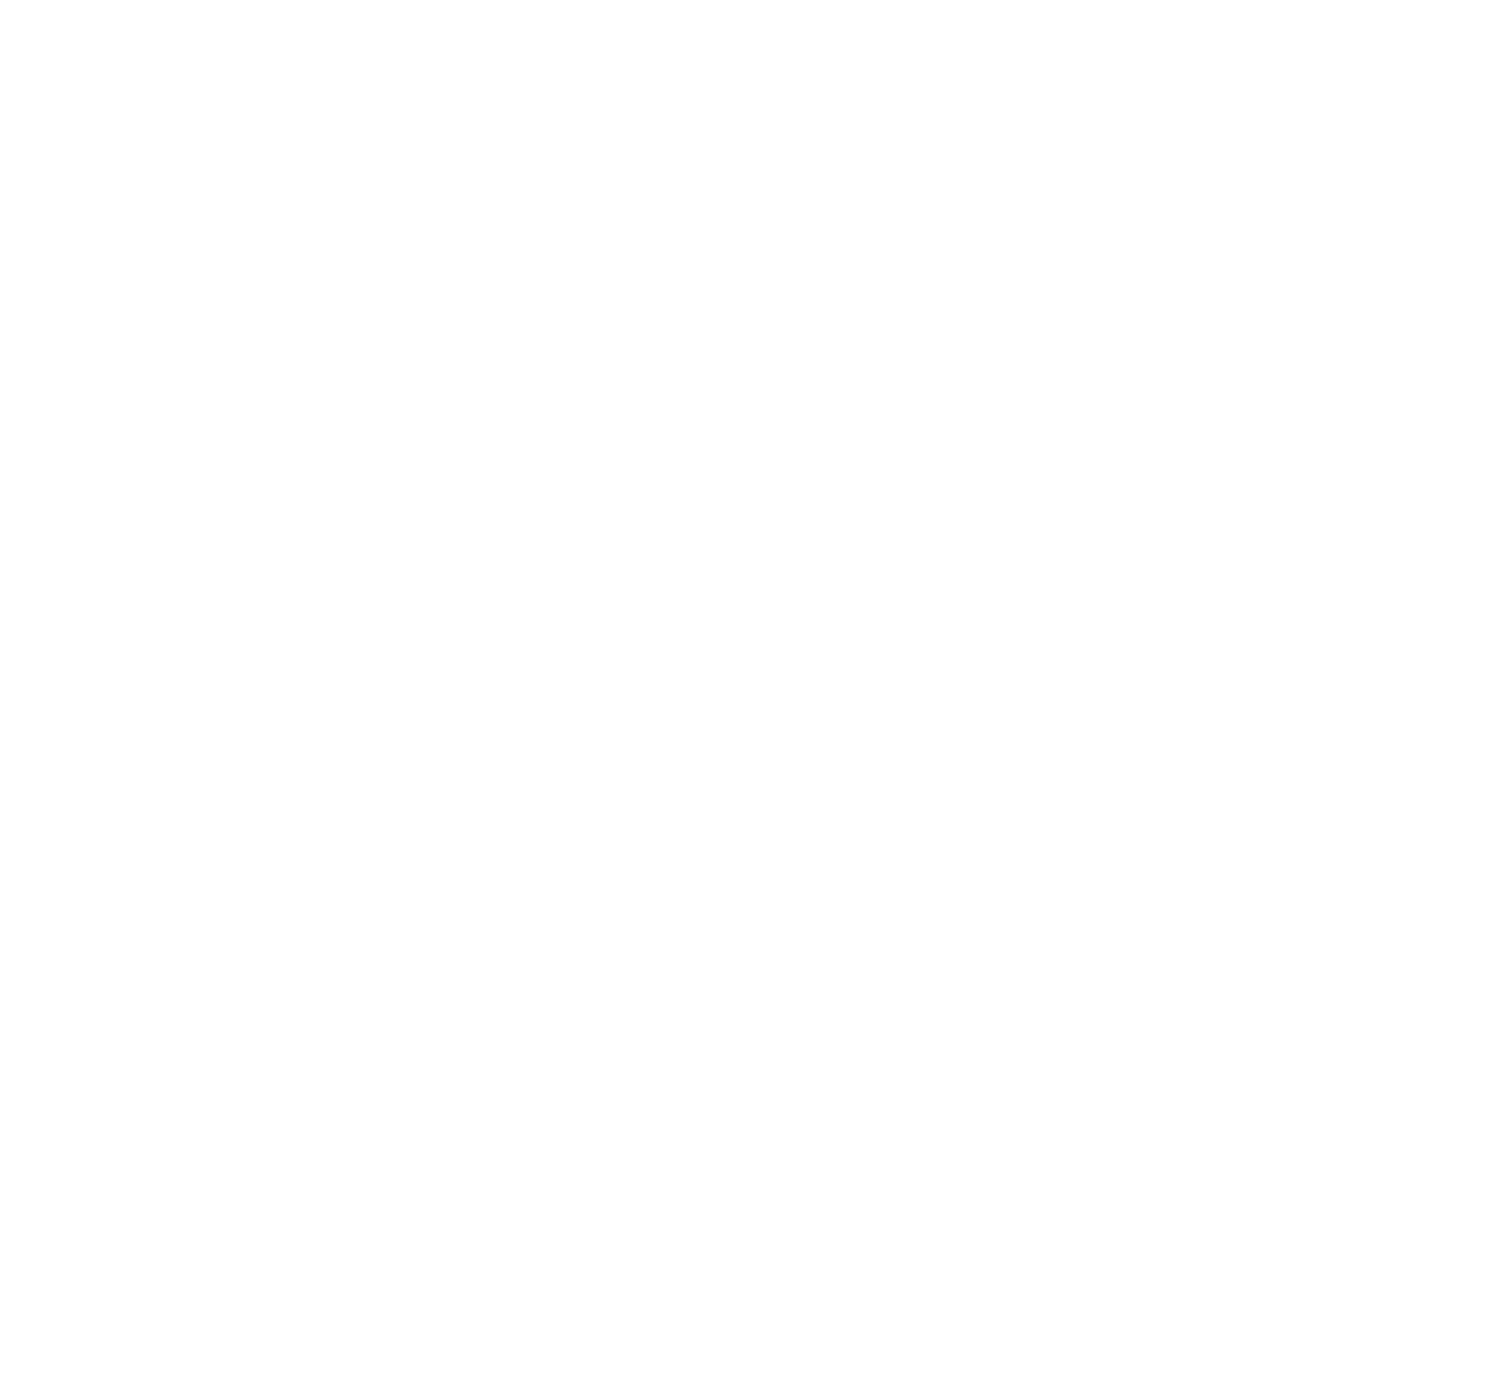 Riverdale Lodges